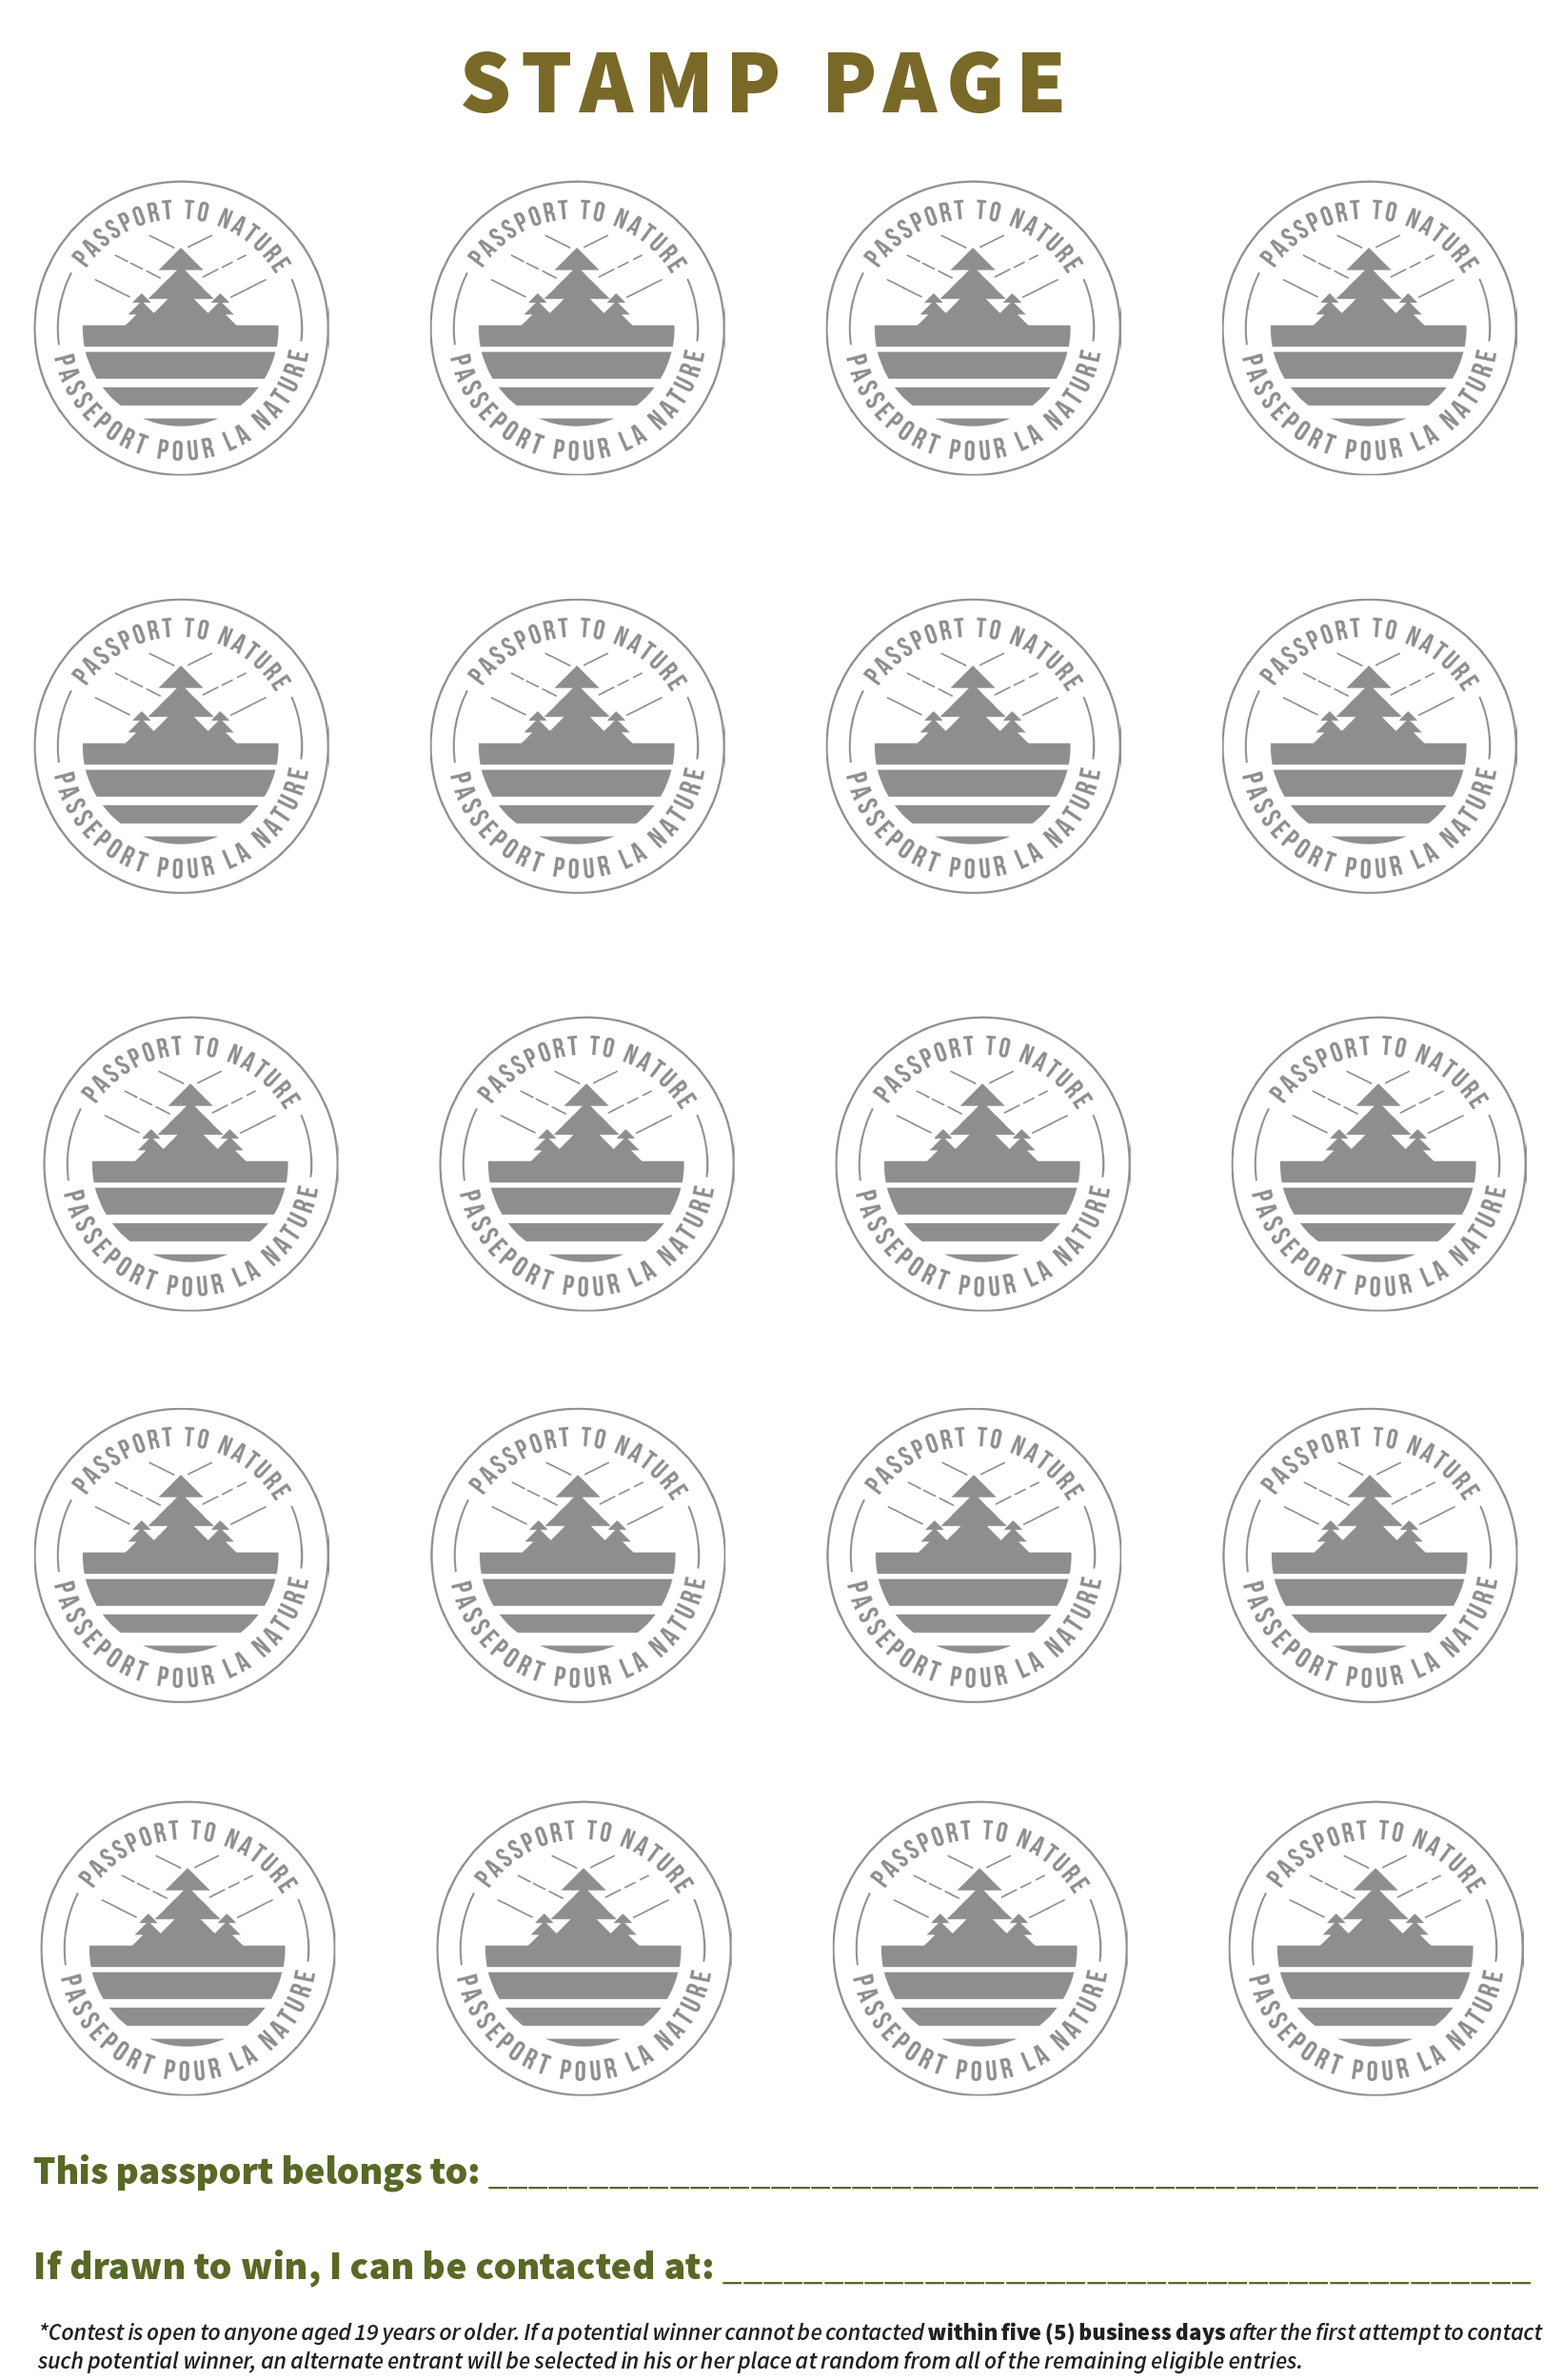 Stamp Page.jpg